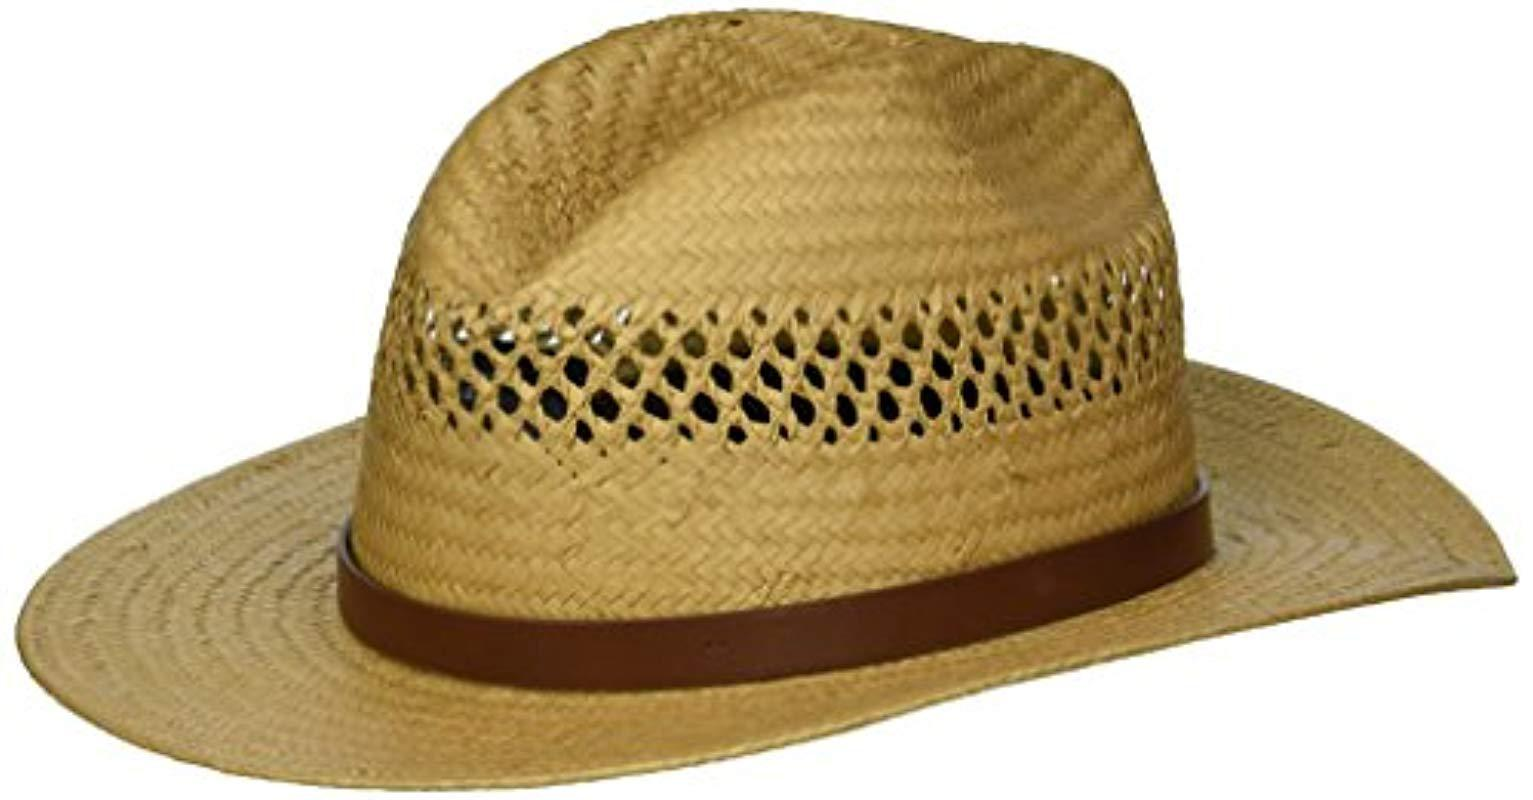 c03c509f59f5d4 Lyst - Brixton Case Medium Brim Straw Fedora Hat for Men - Save 46%